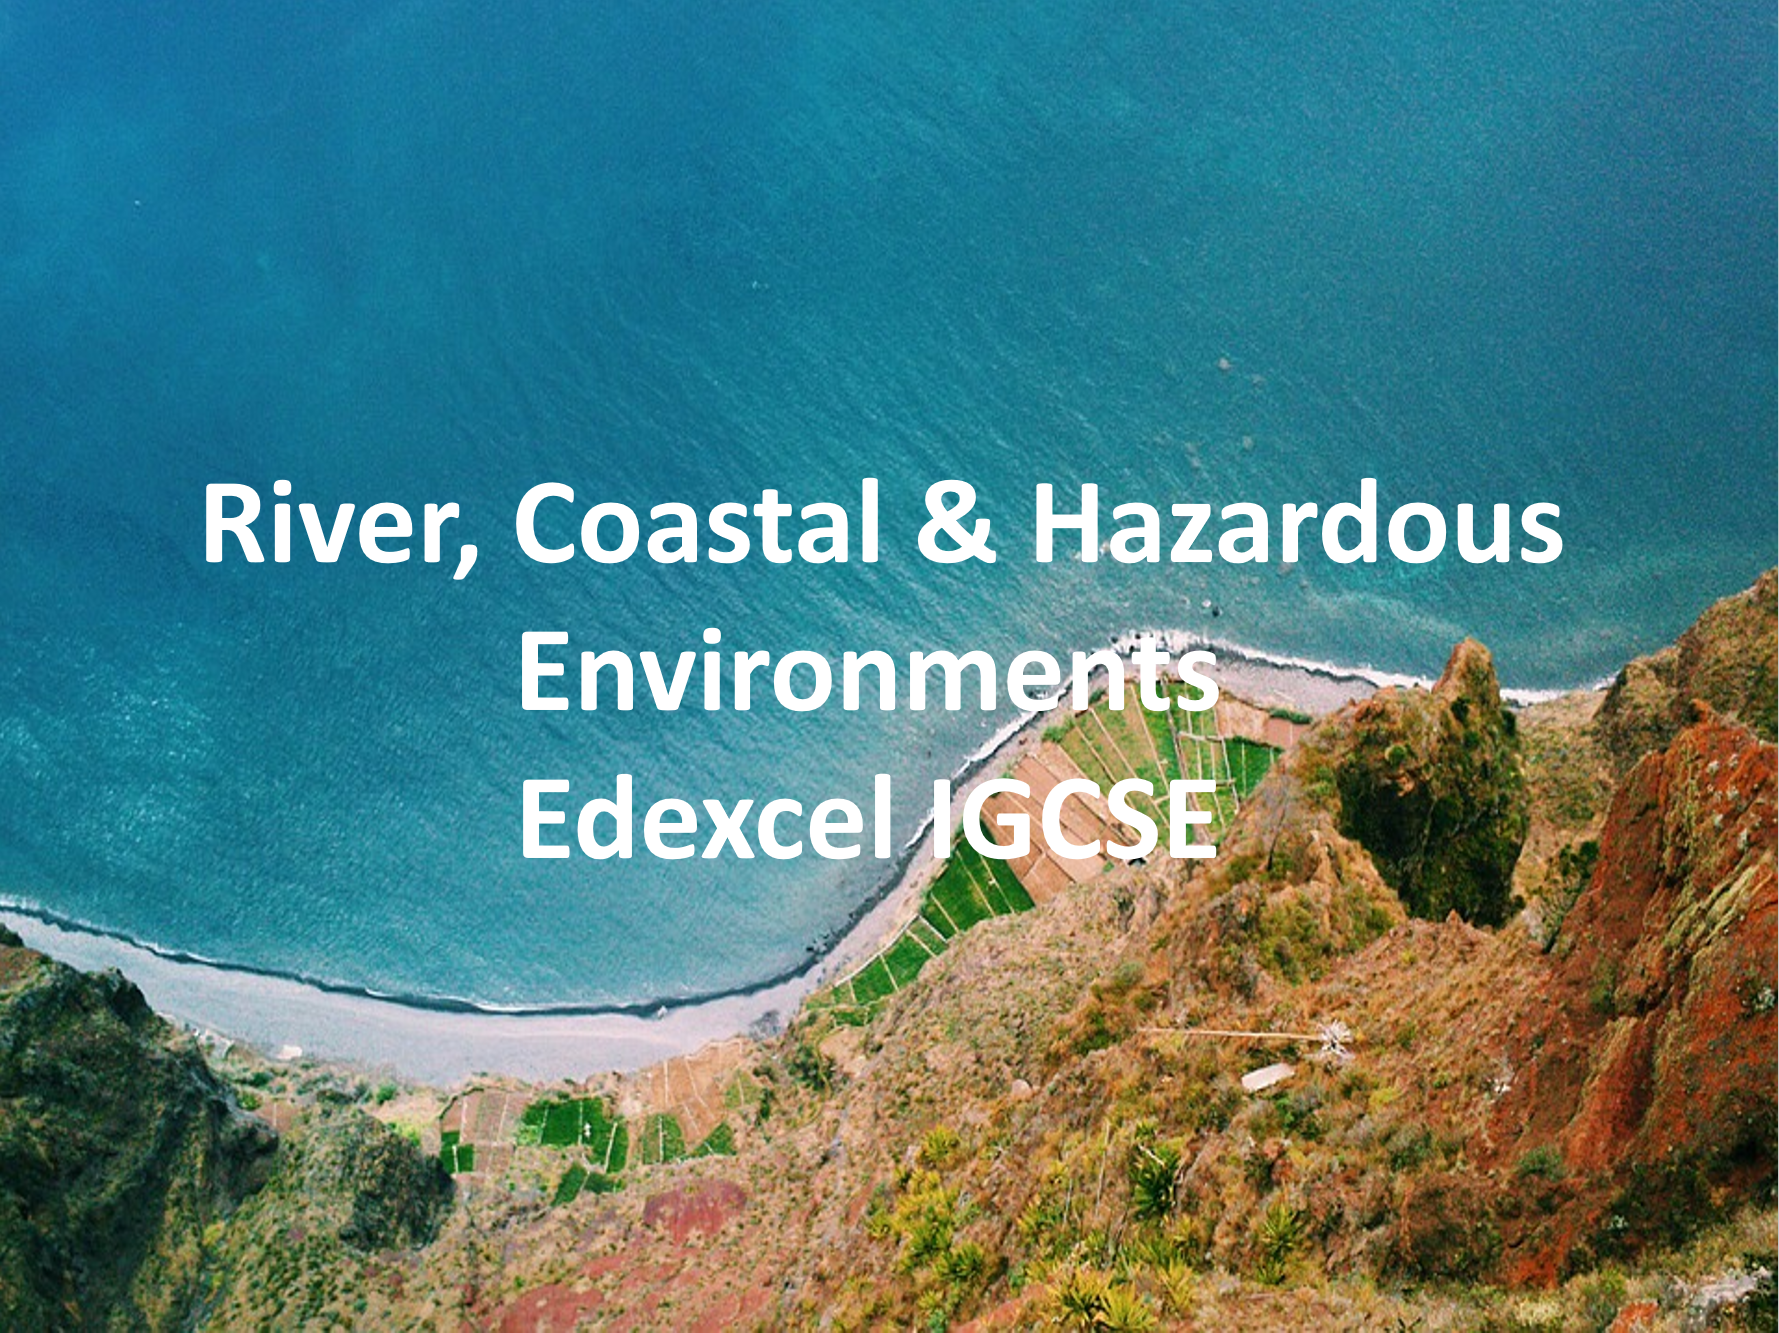 River, Coastal and Hazardous Environments - Edexcel IGCSE